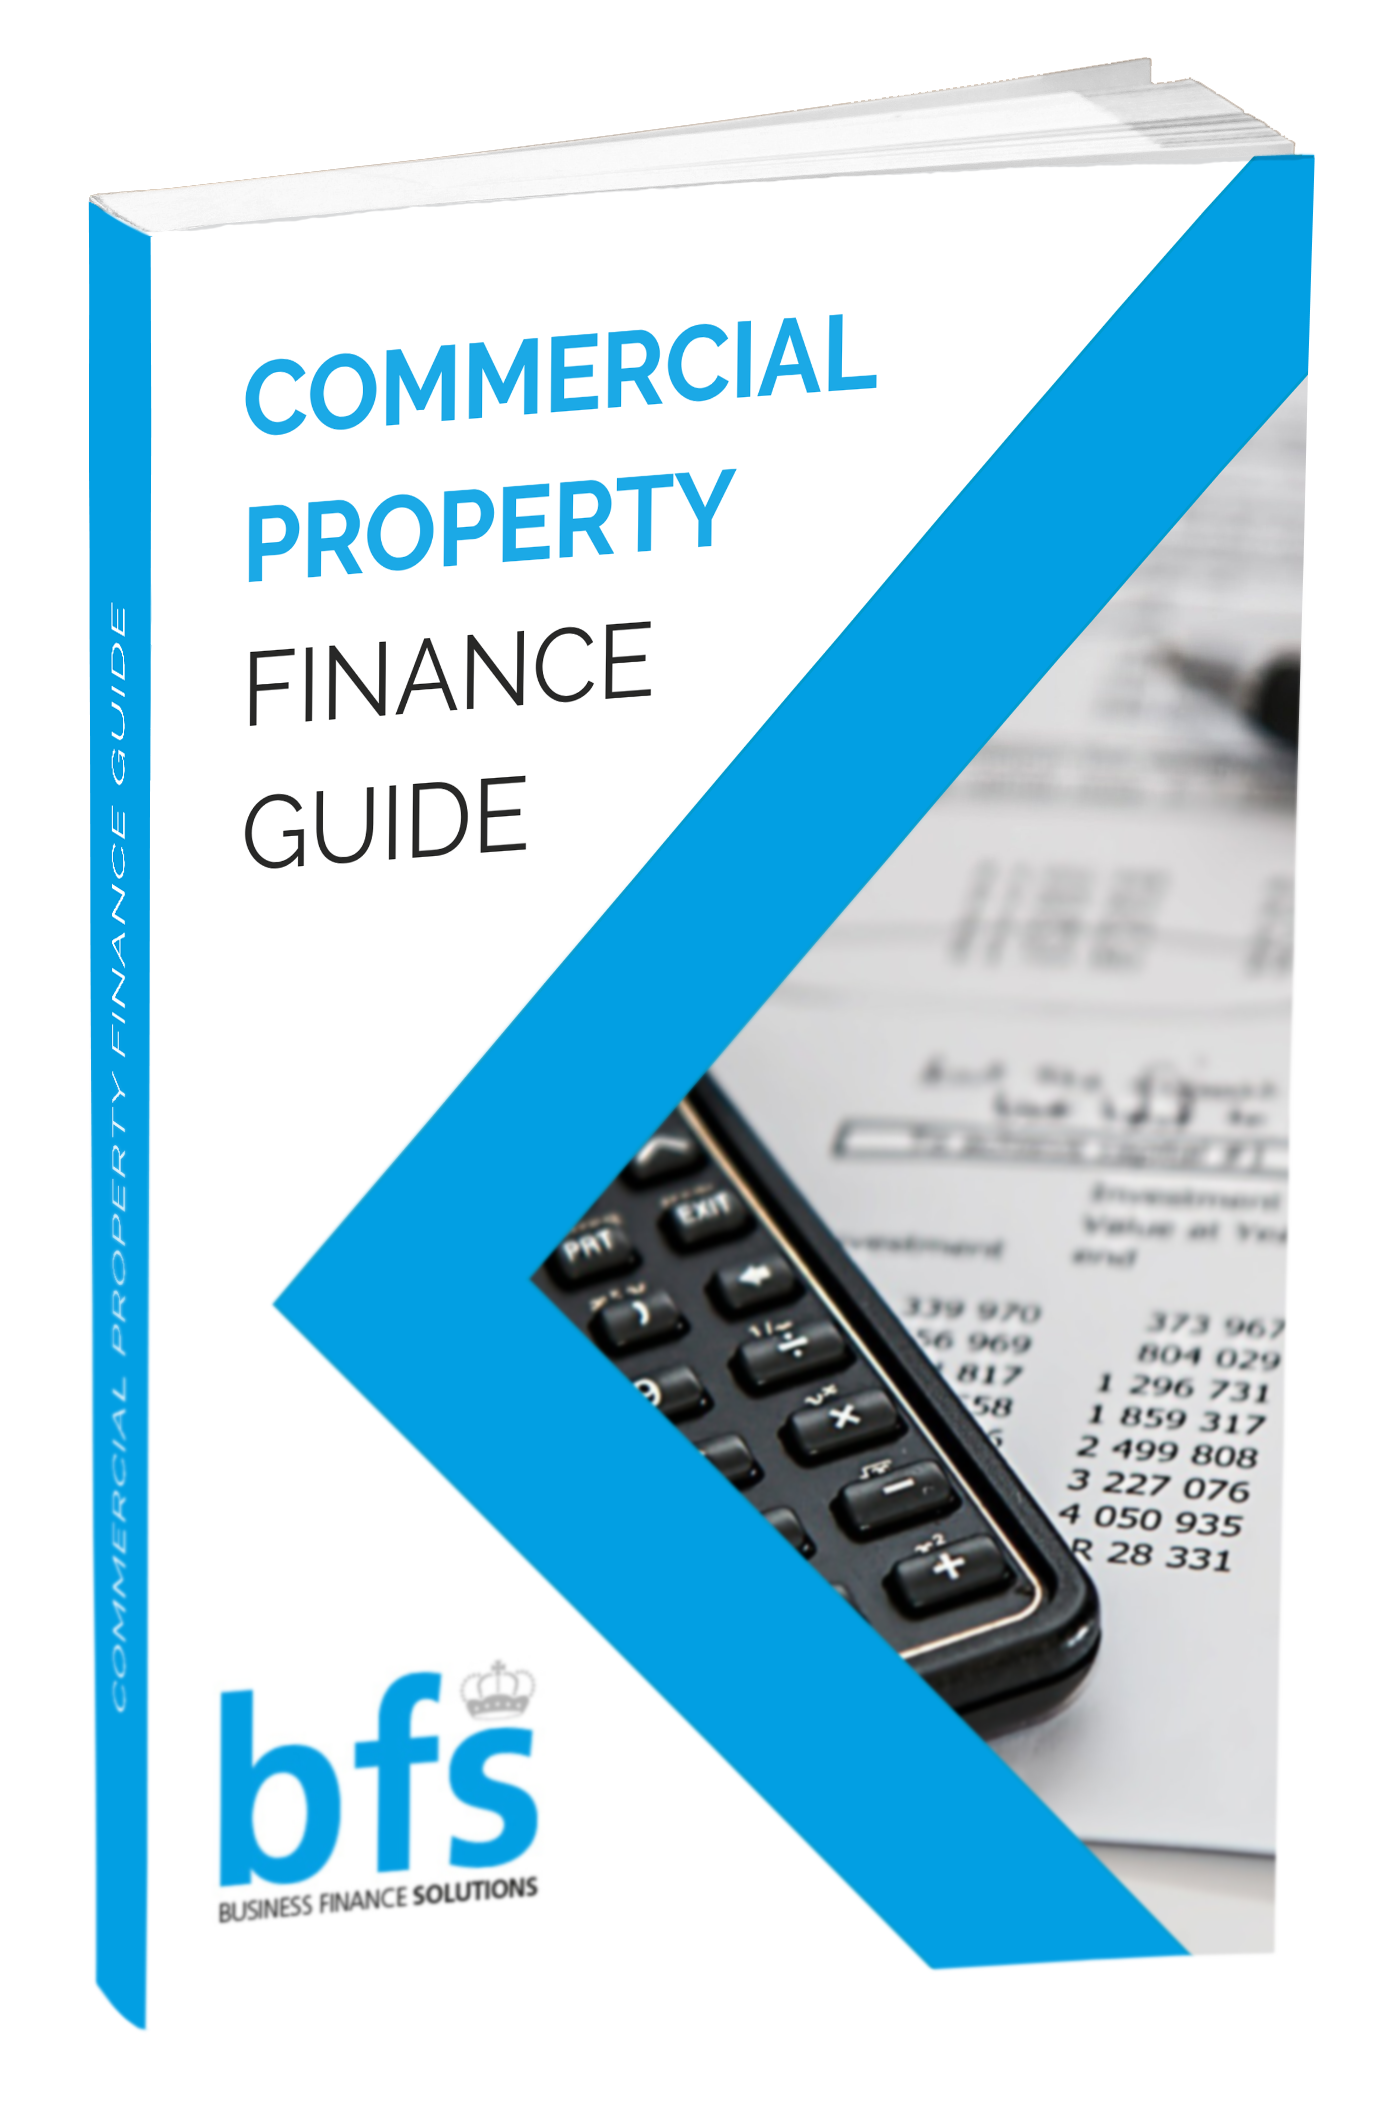 The Asset Finance Guide